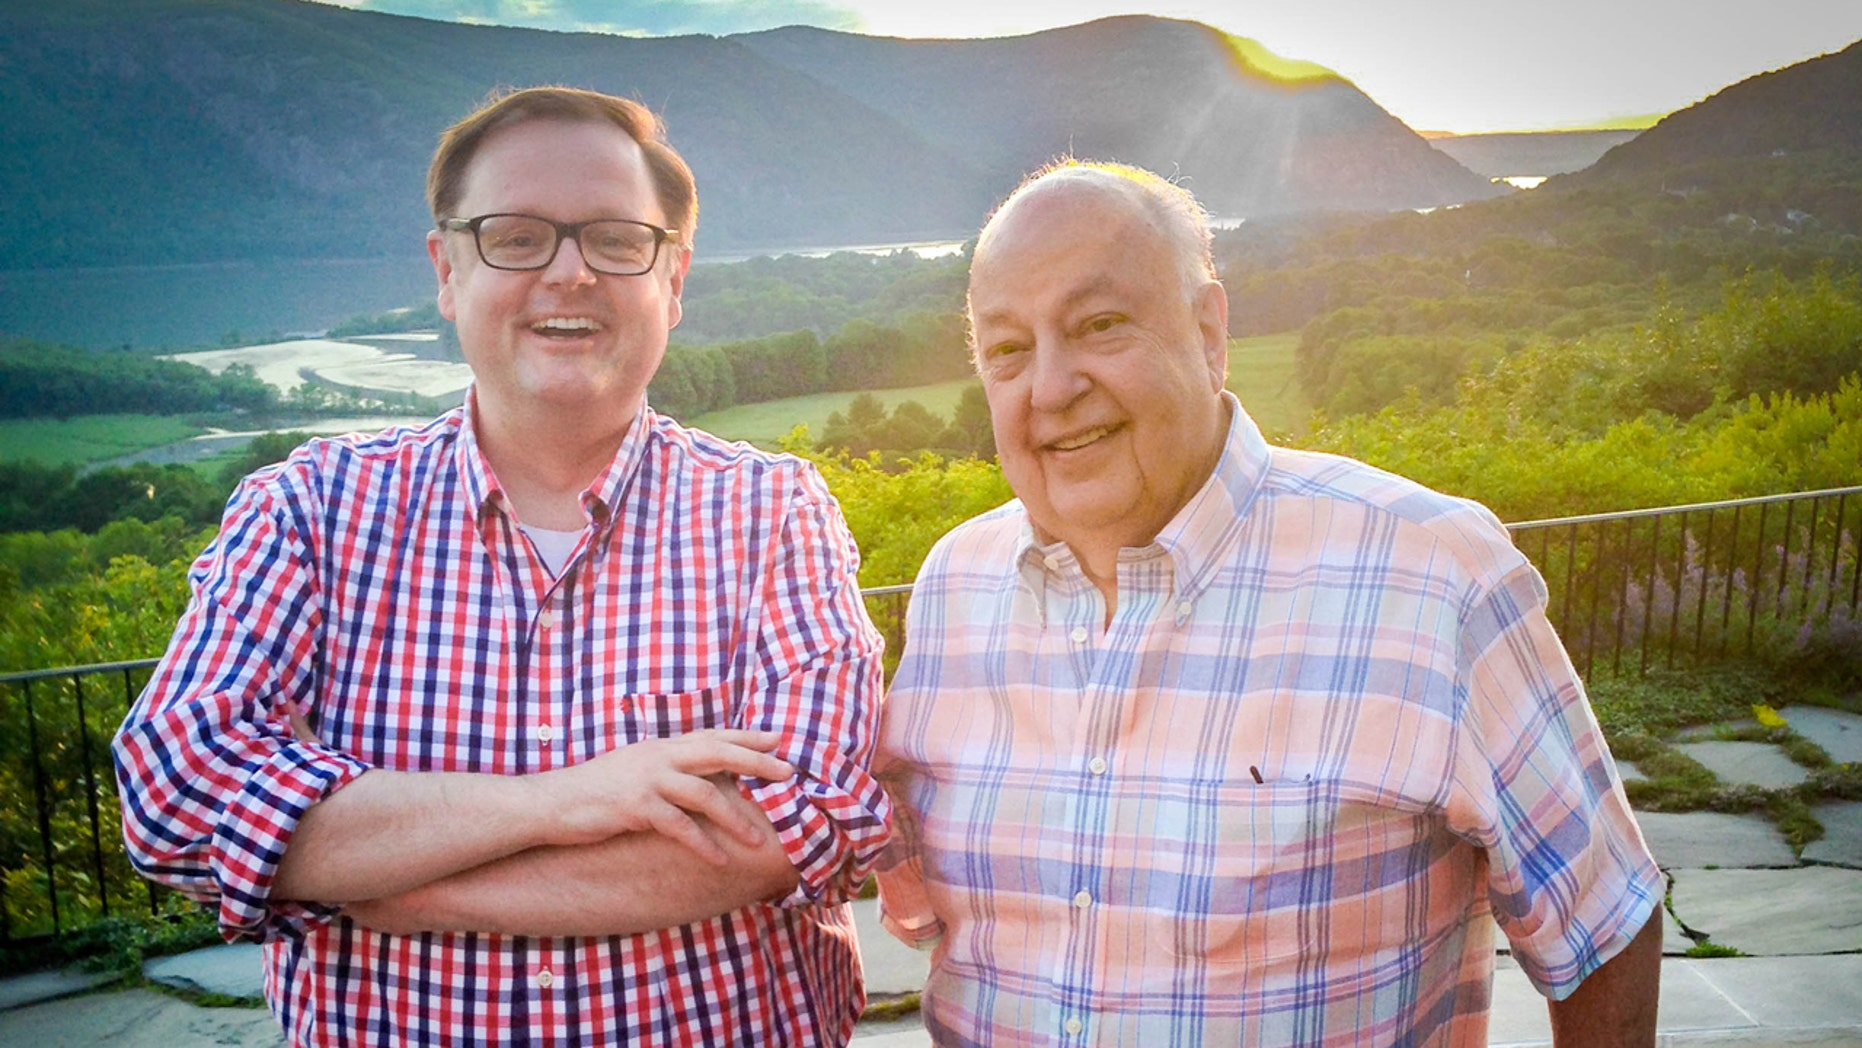 Todd Starnes and Roger Ailes